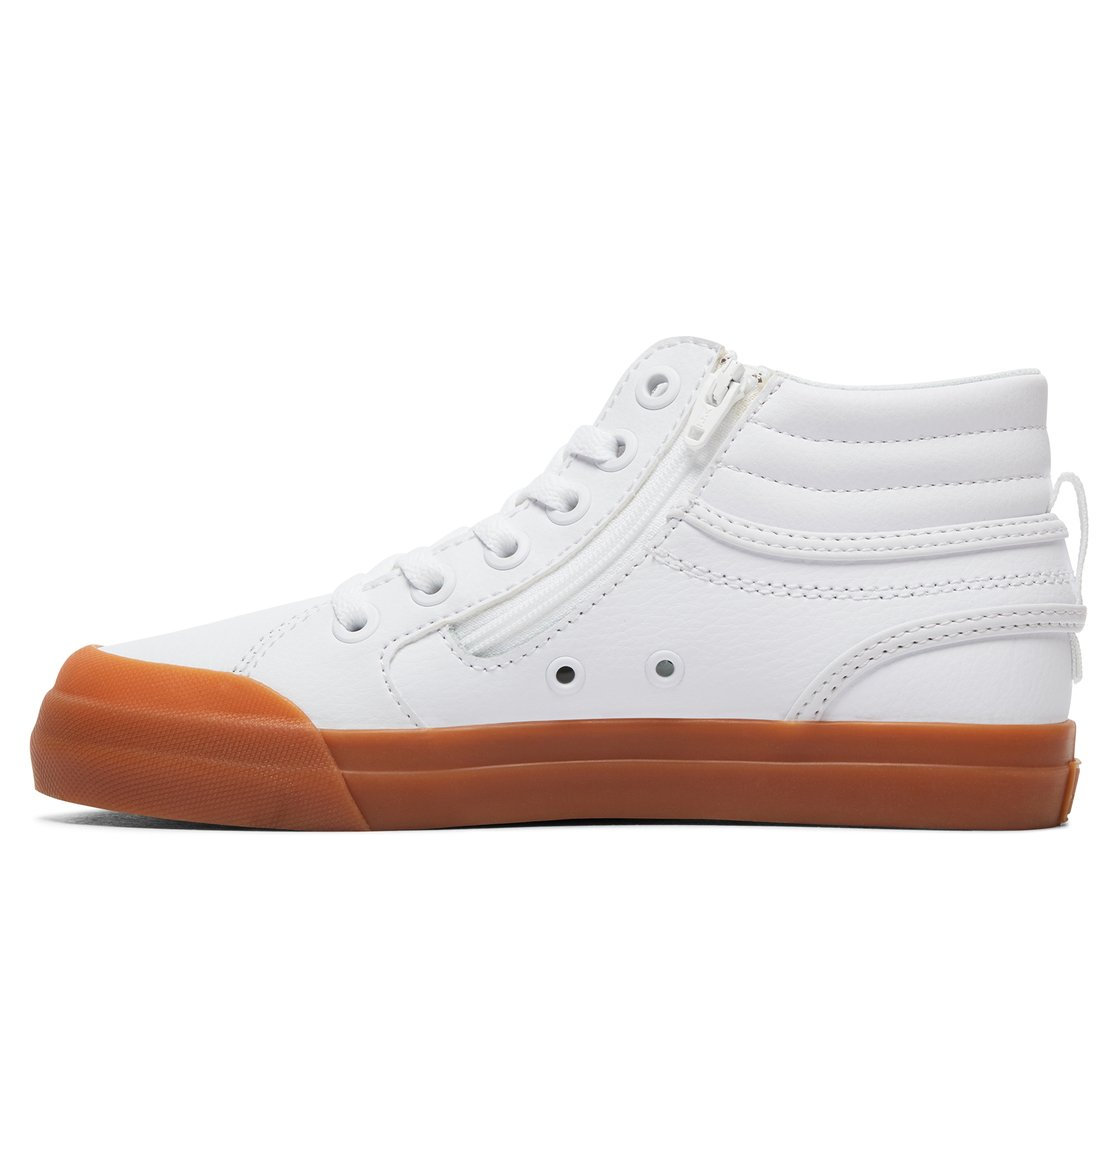 c7ab711e8ad1 DC Shoes™ Kid s Evan Hi SE Zip High Top Shoes ADBS300307